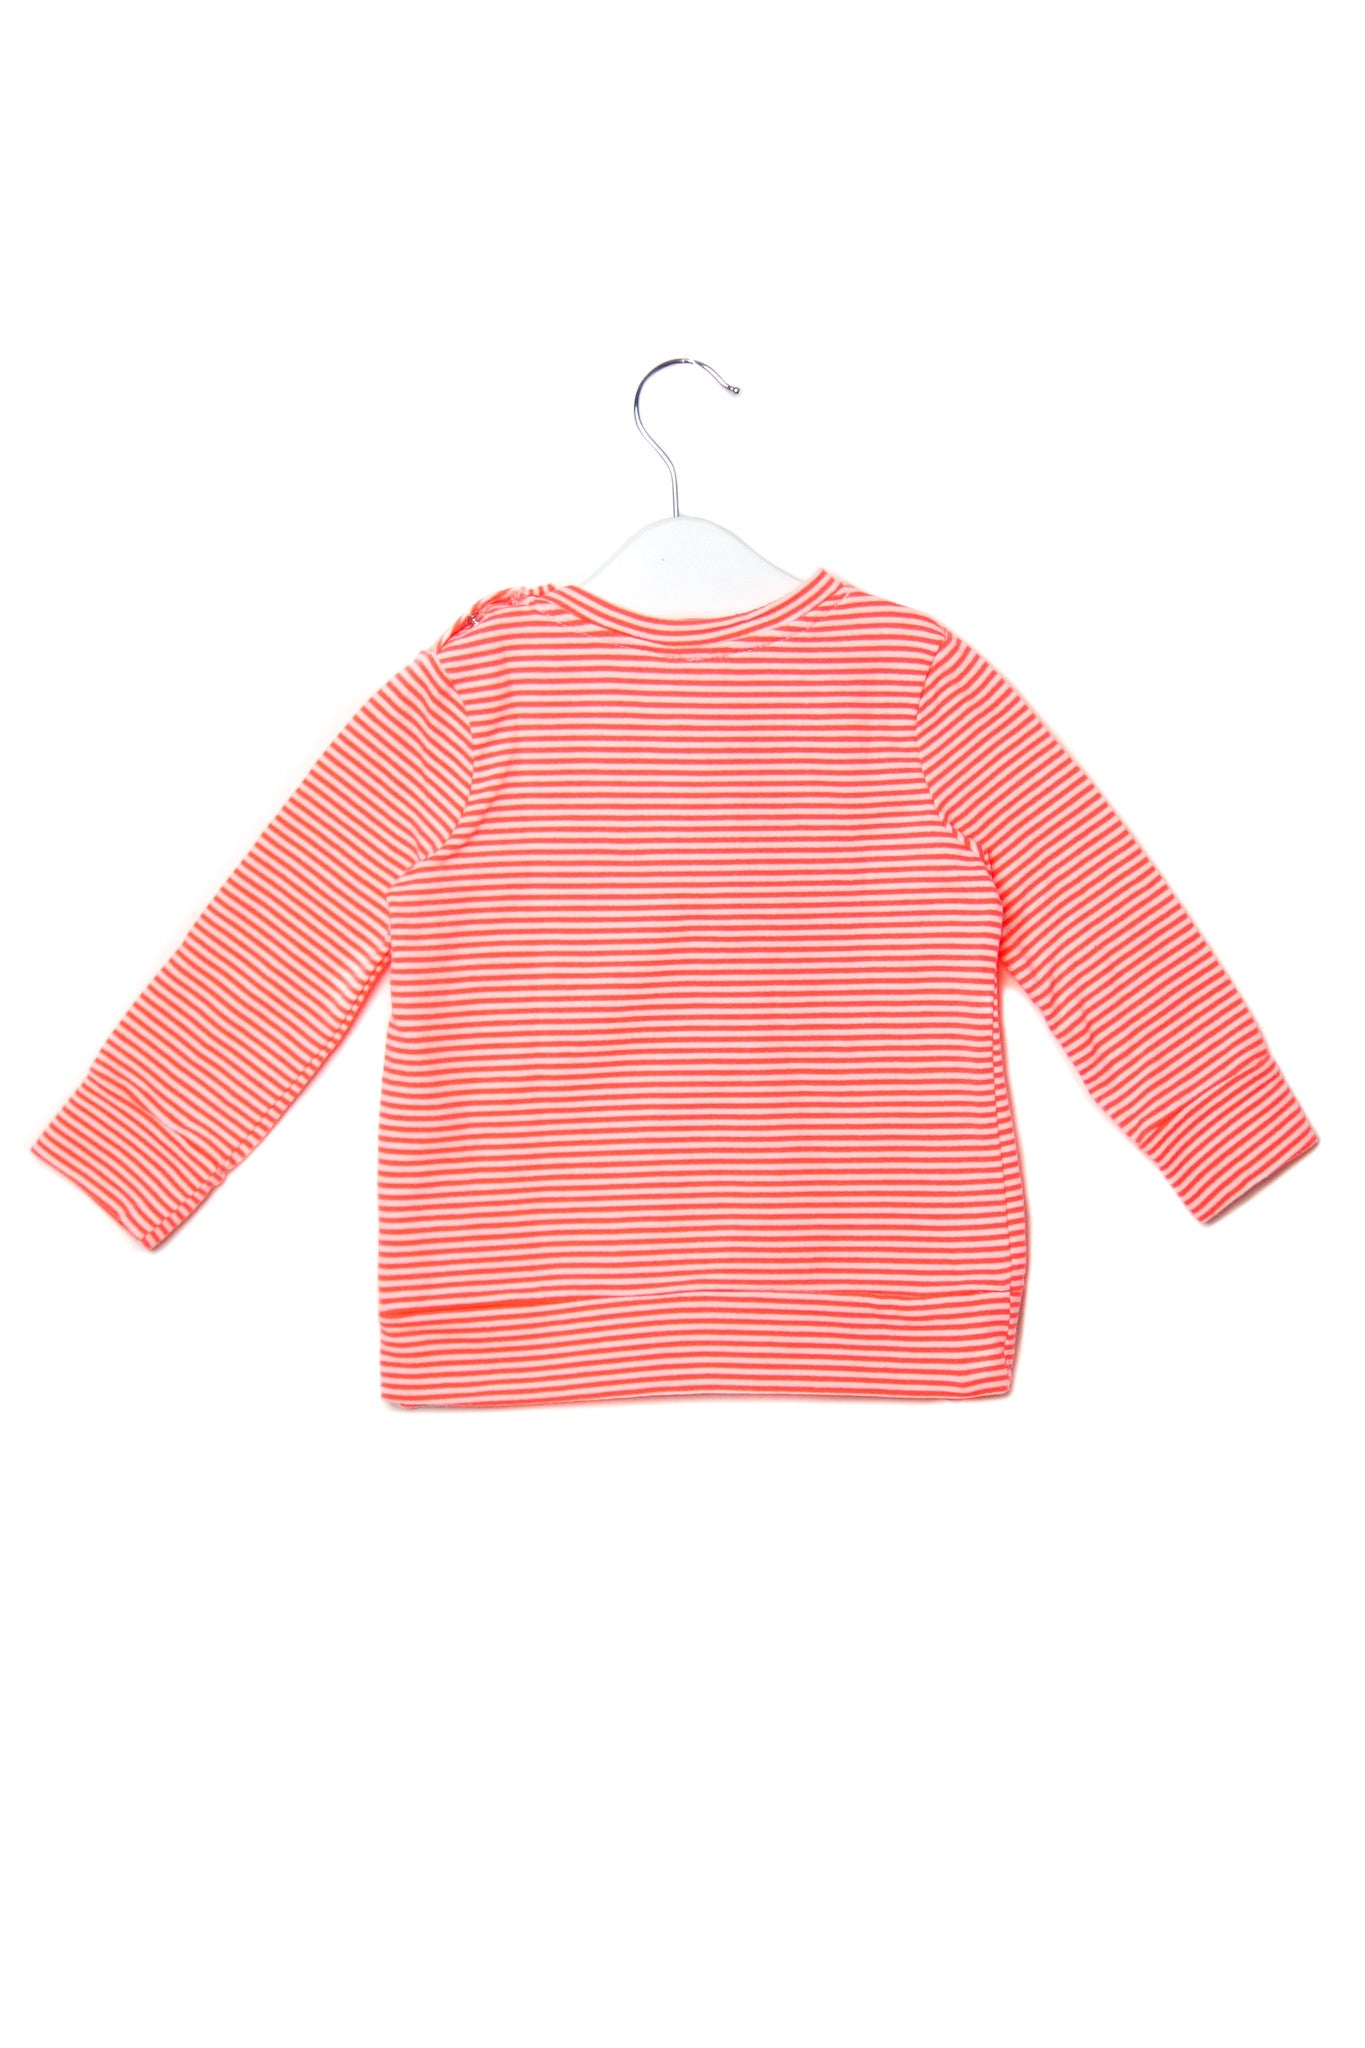 10002111 Seed Baby~Sweatshirt 1-2T at Retykle